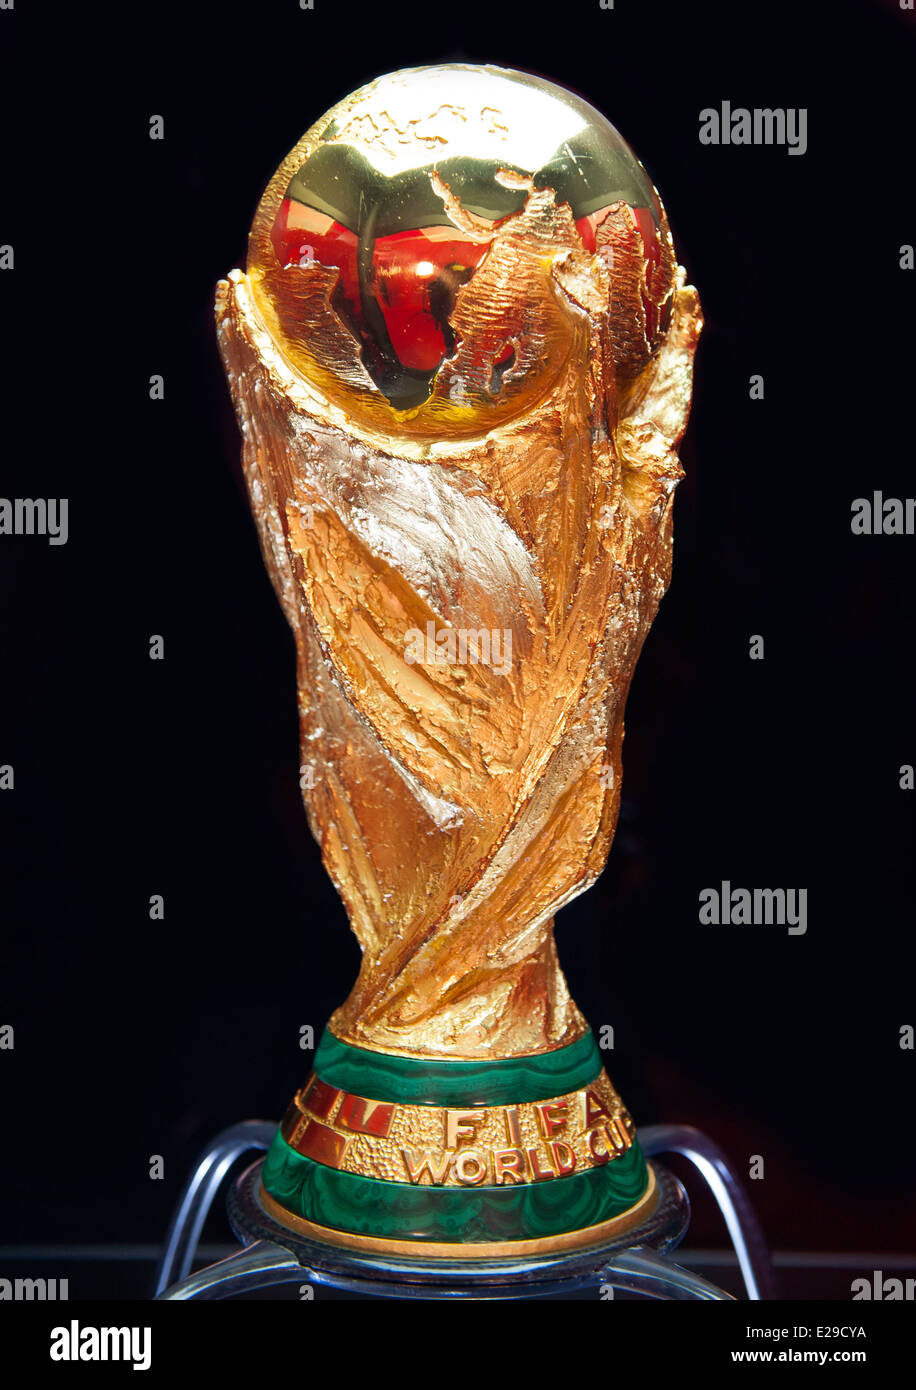 world cup trophy stock photos world cup trophy stock. Black Bedroom Furniture Sets. Home Design Ideas